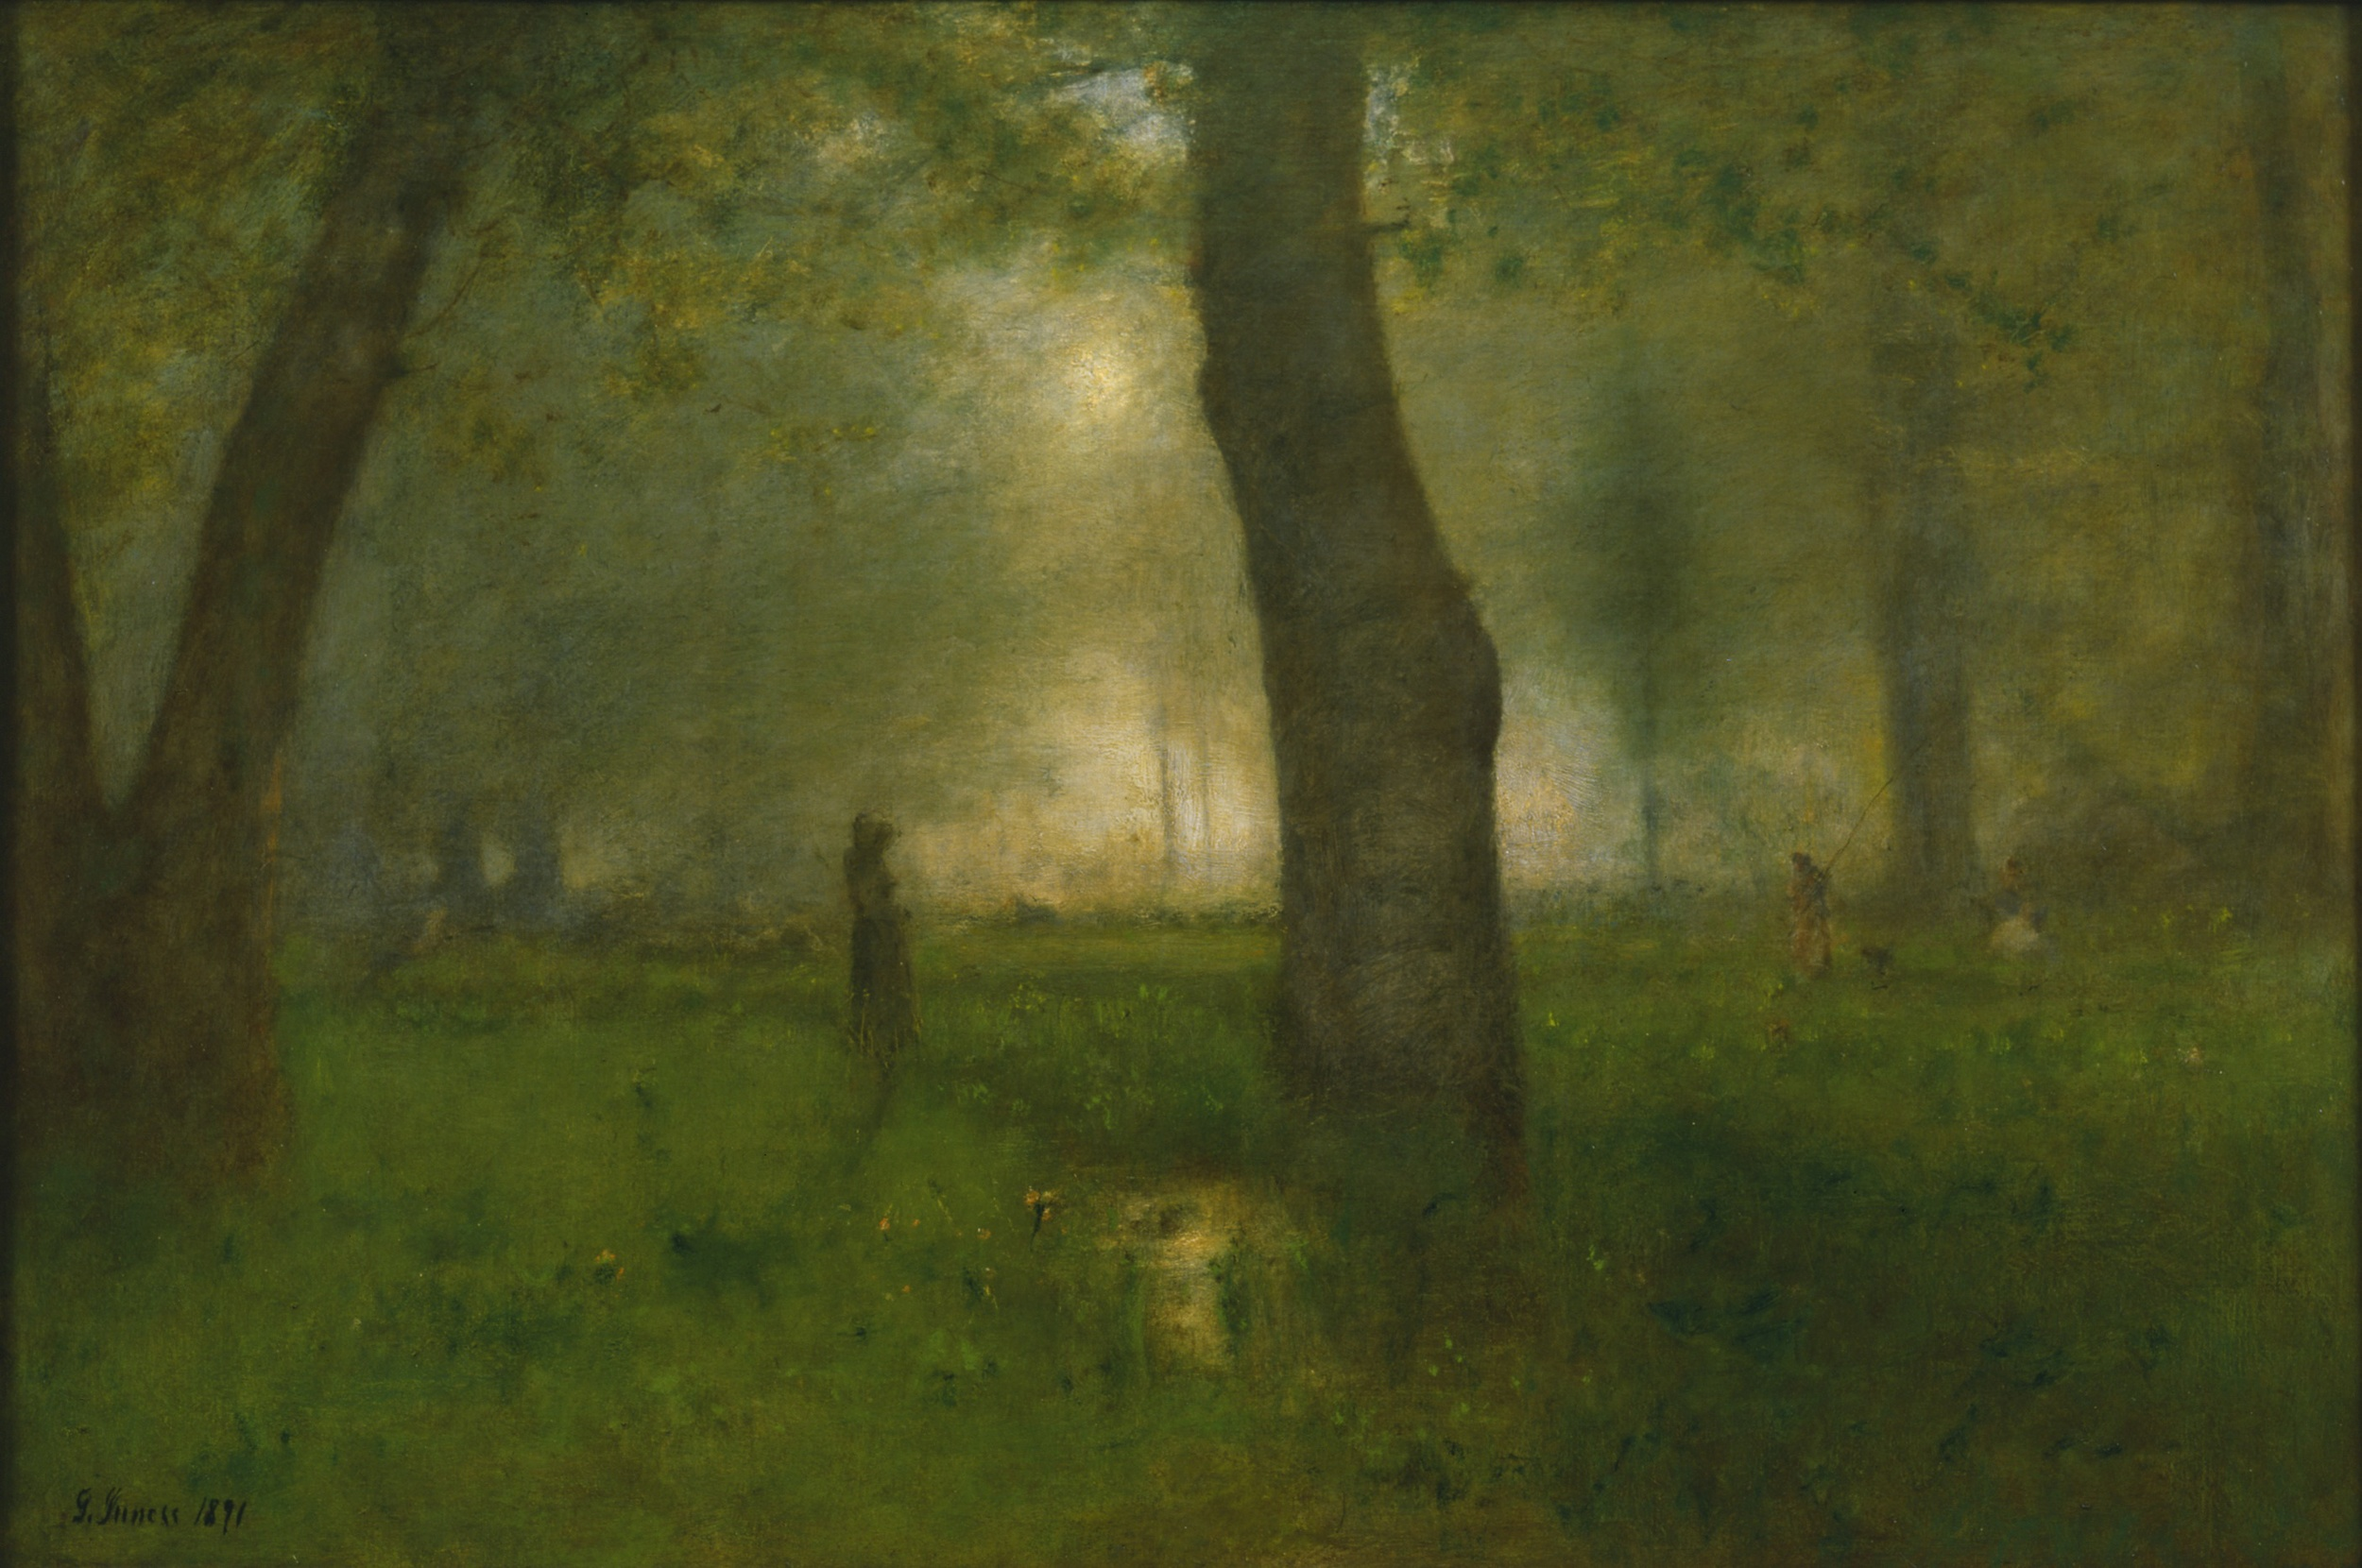 """The Trout Brook,"" by George Inness. Oil on canvas, 30 1/2 by 45 1/4 inches, The Newark Museum, New Jersey. 1891"